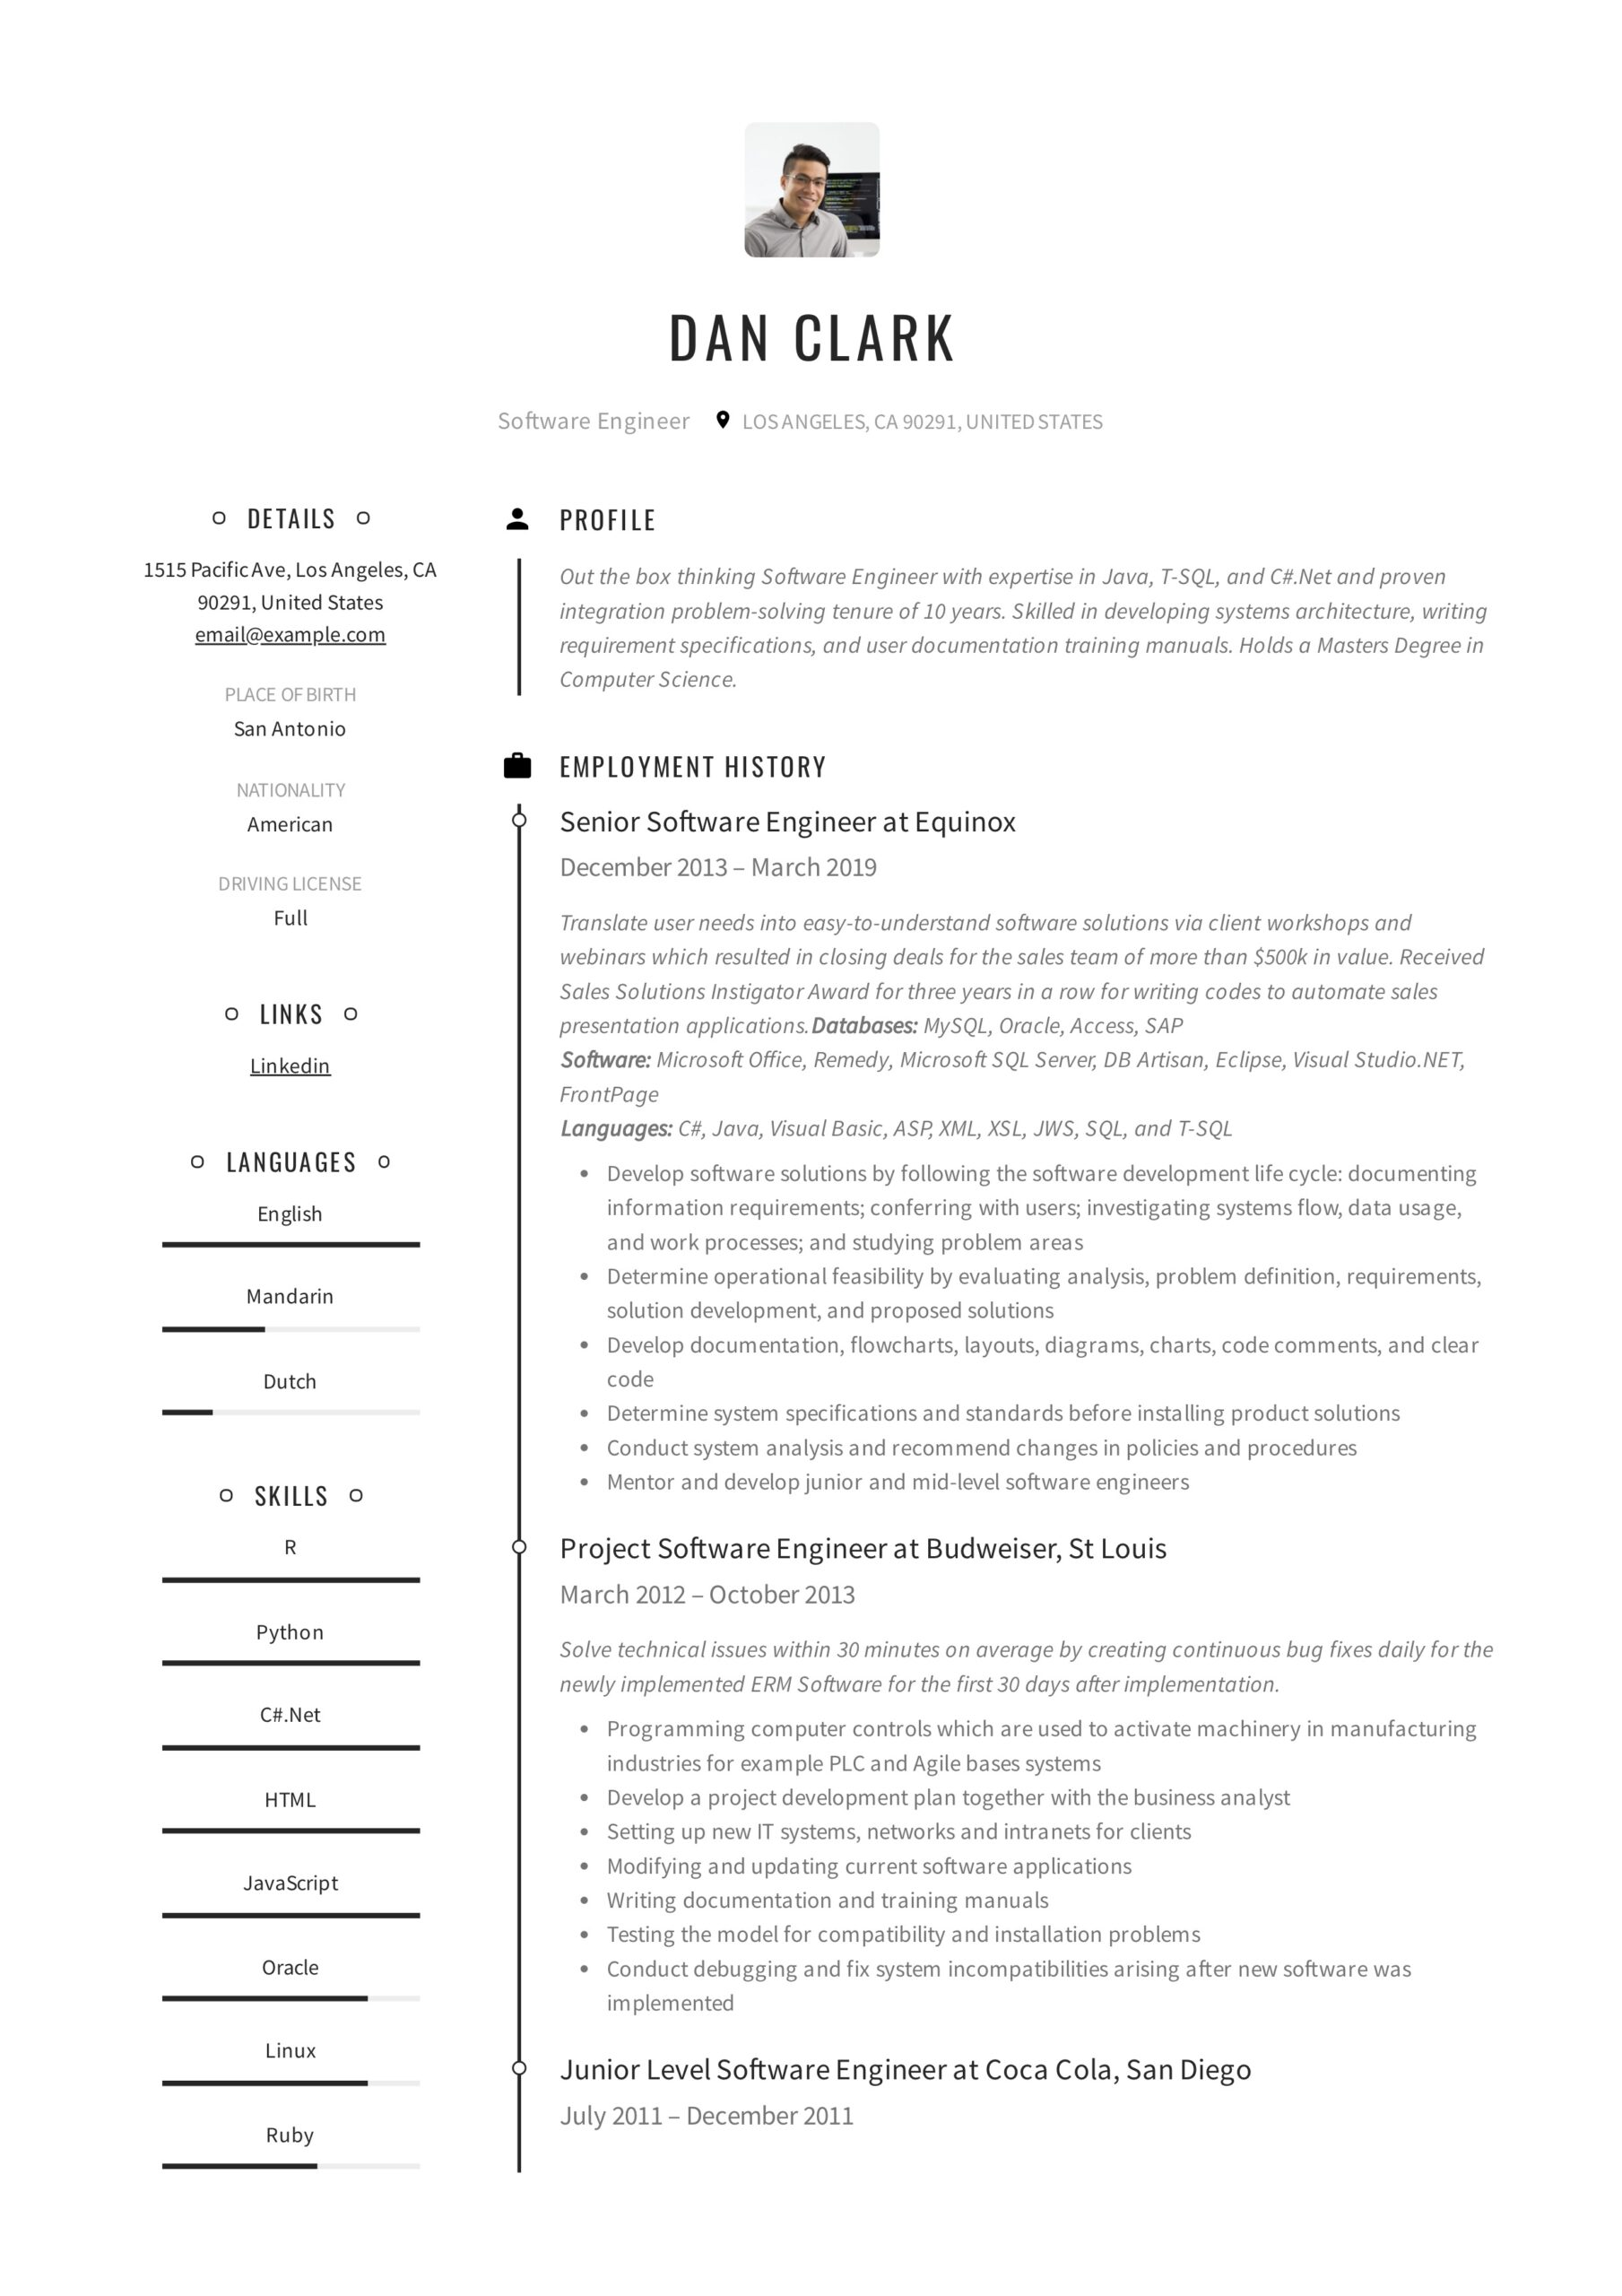 resume templates pdf word free downloads and guides dan software engineer sap ehs Resume Free Resume Templates 2020 Download